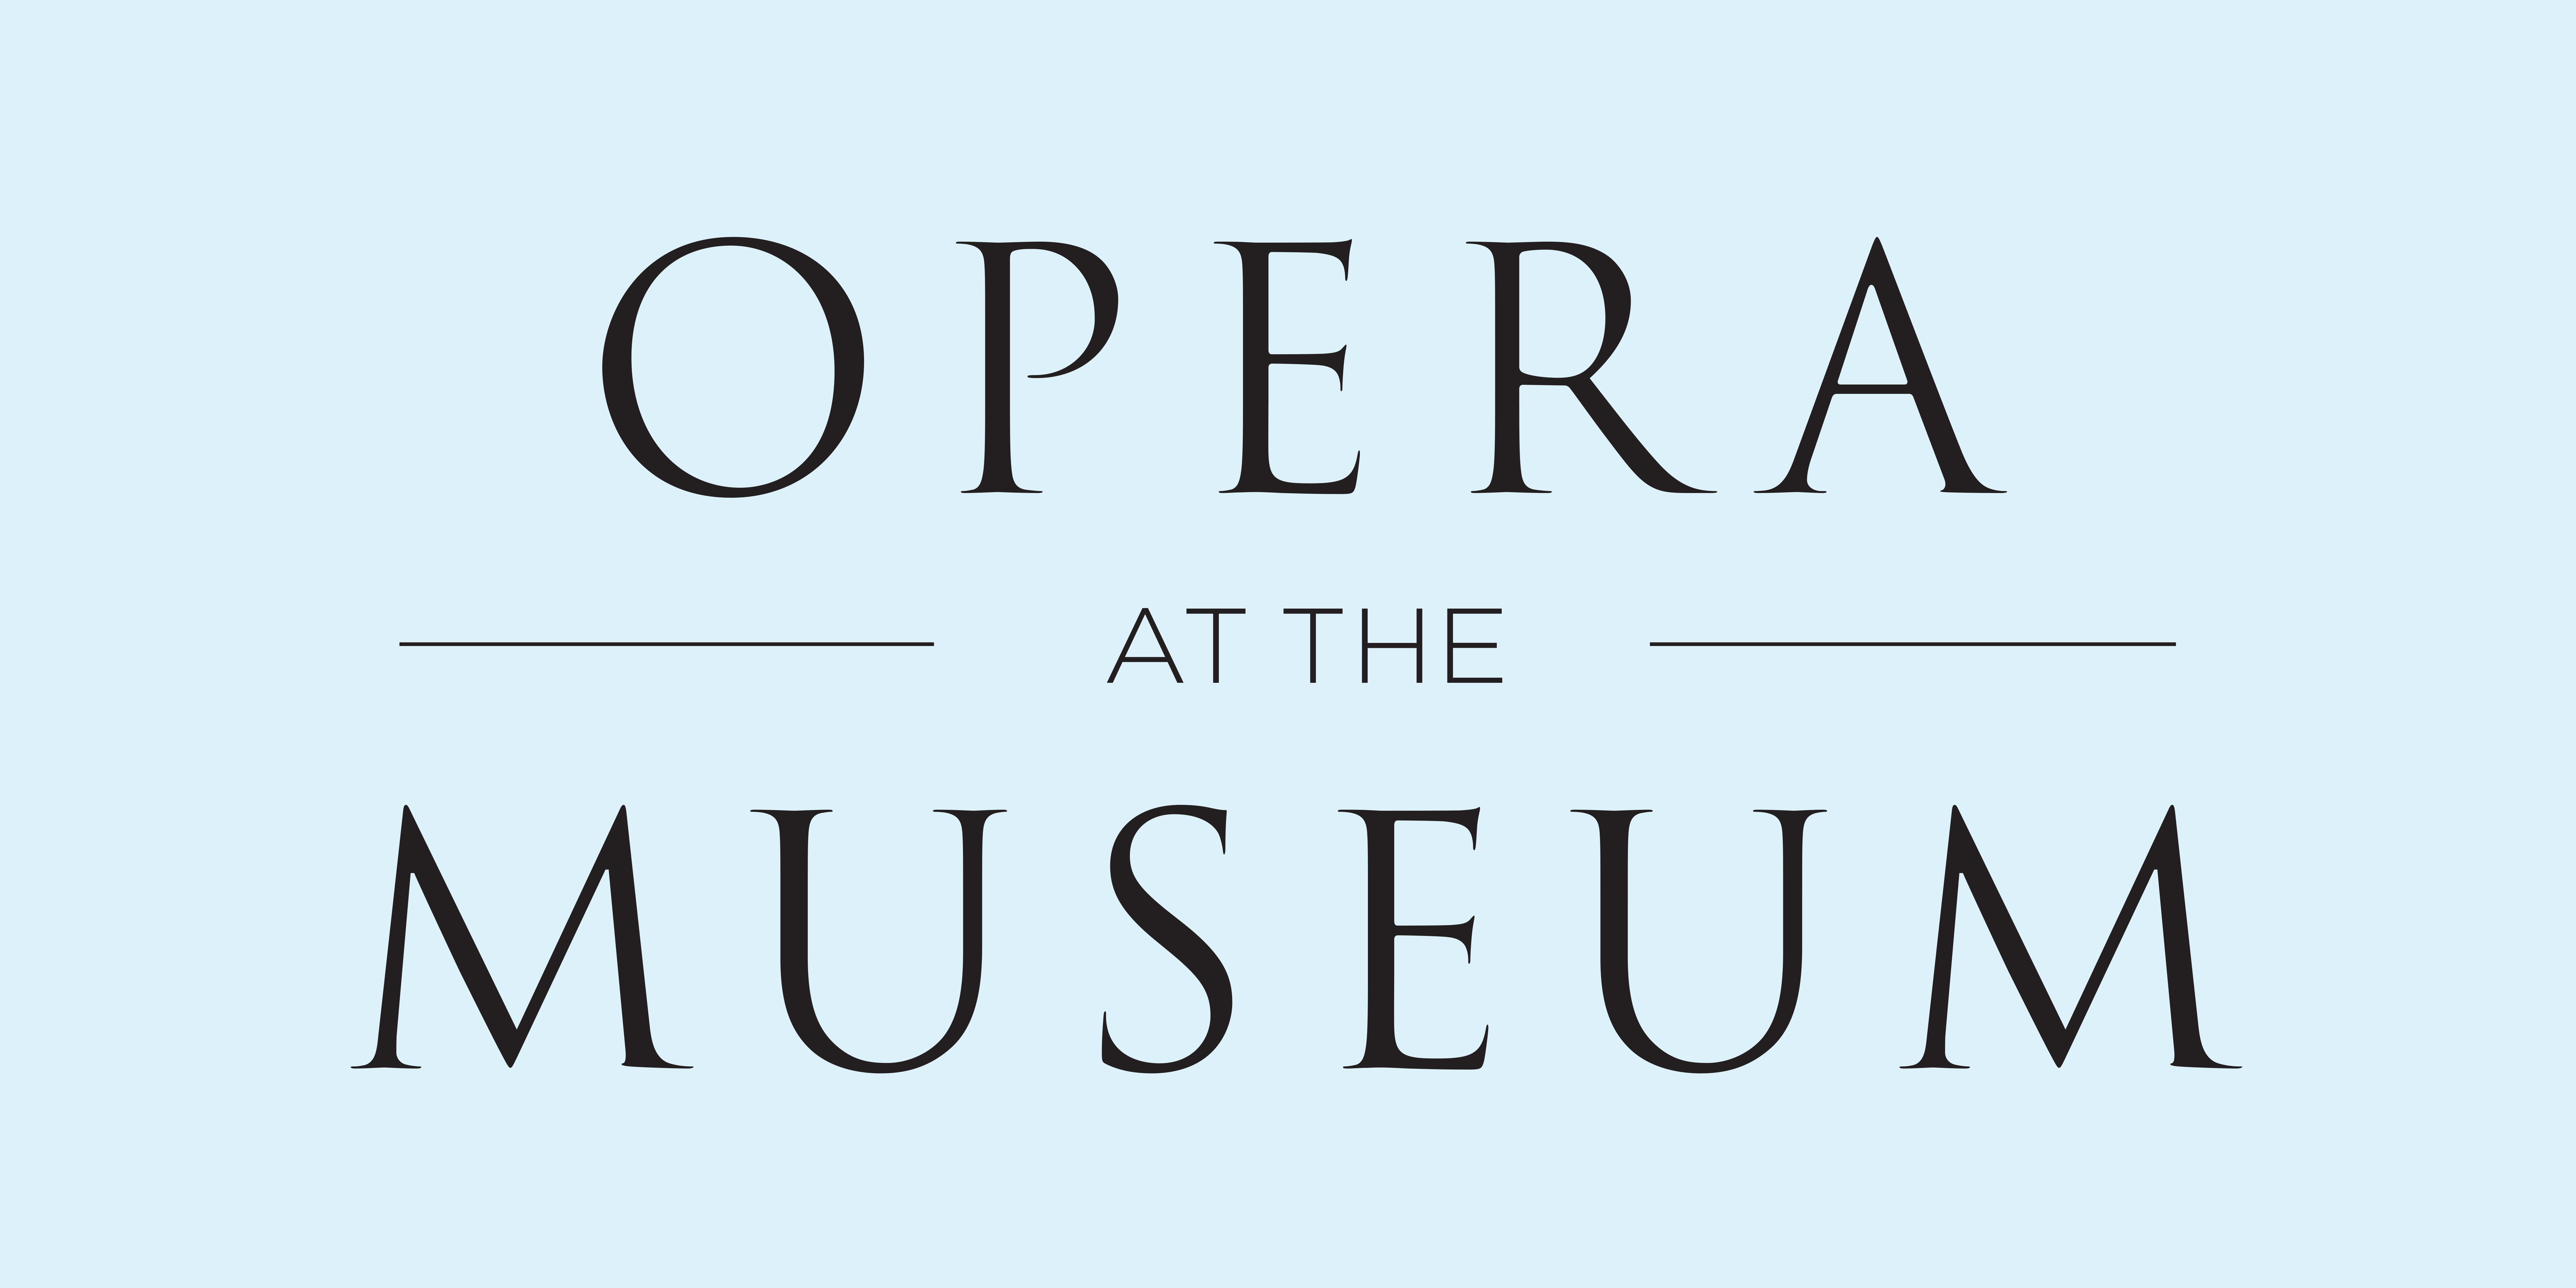 opera at the museum